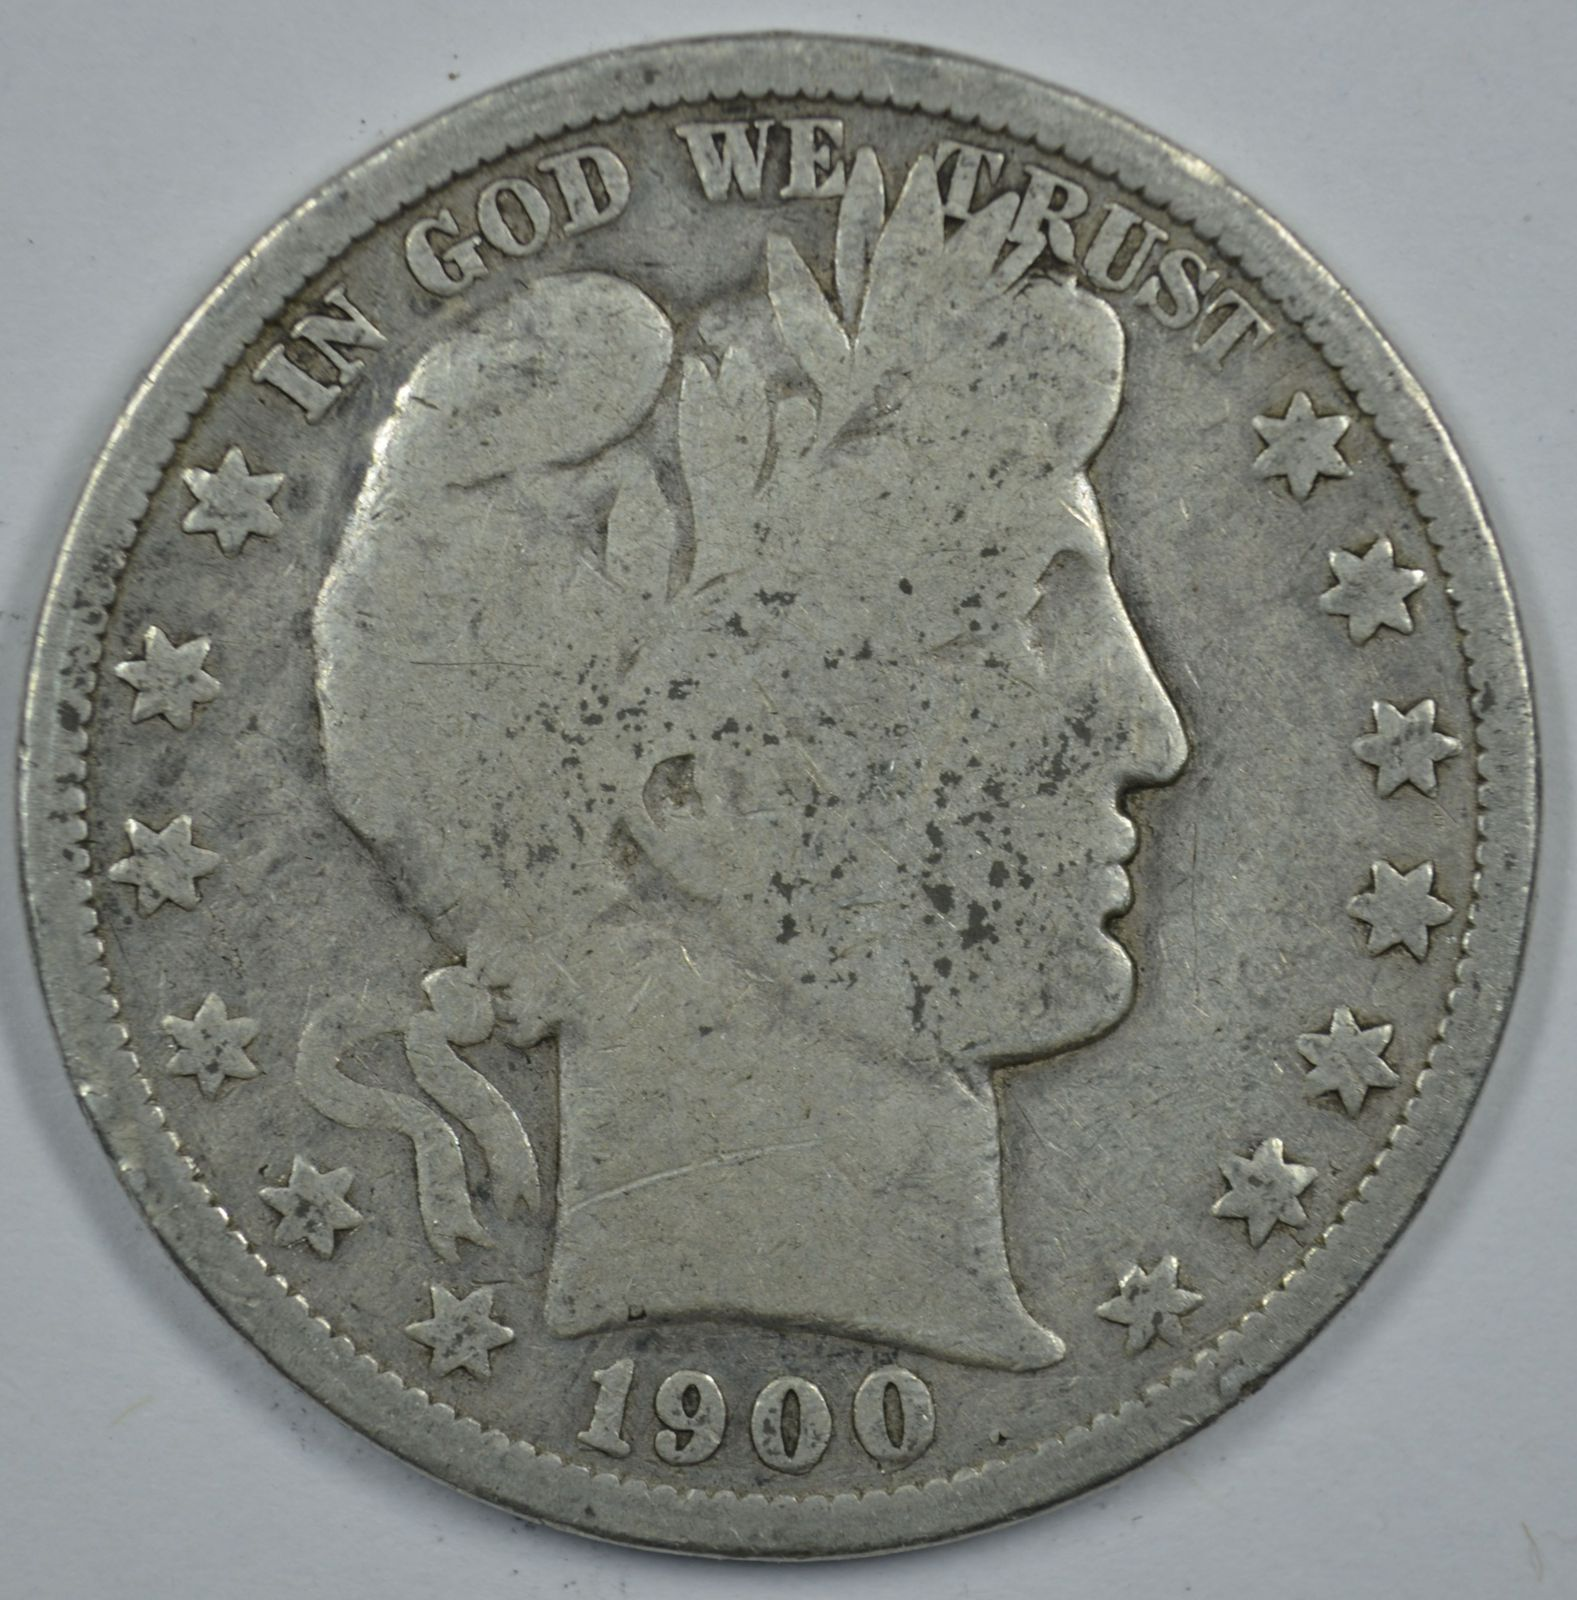 Primary image for 1900 P Barber circulated silver half